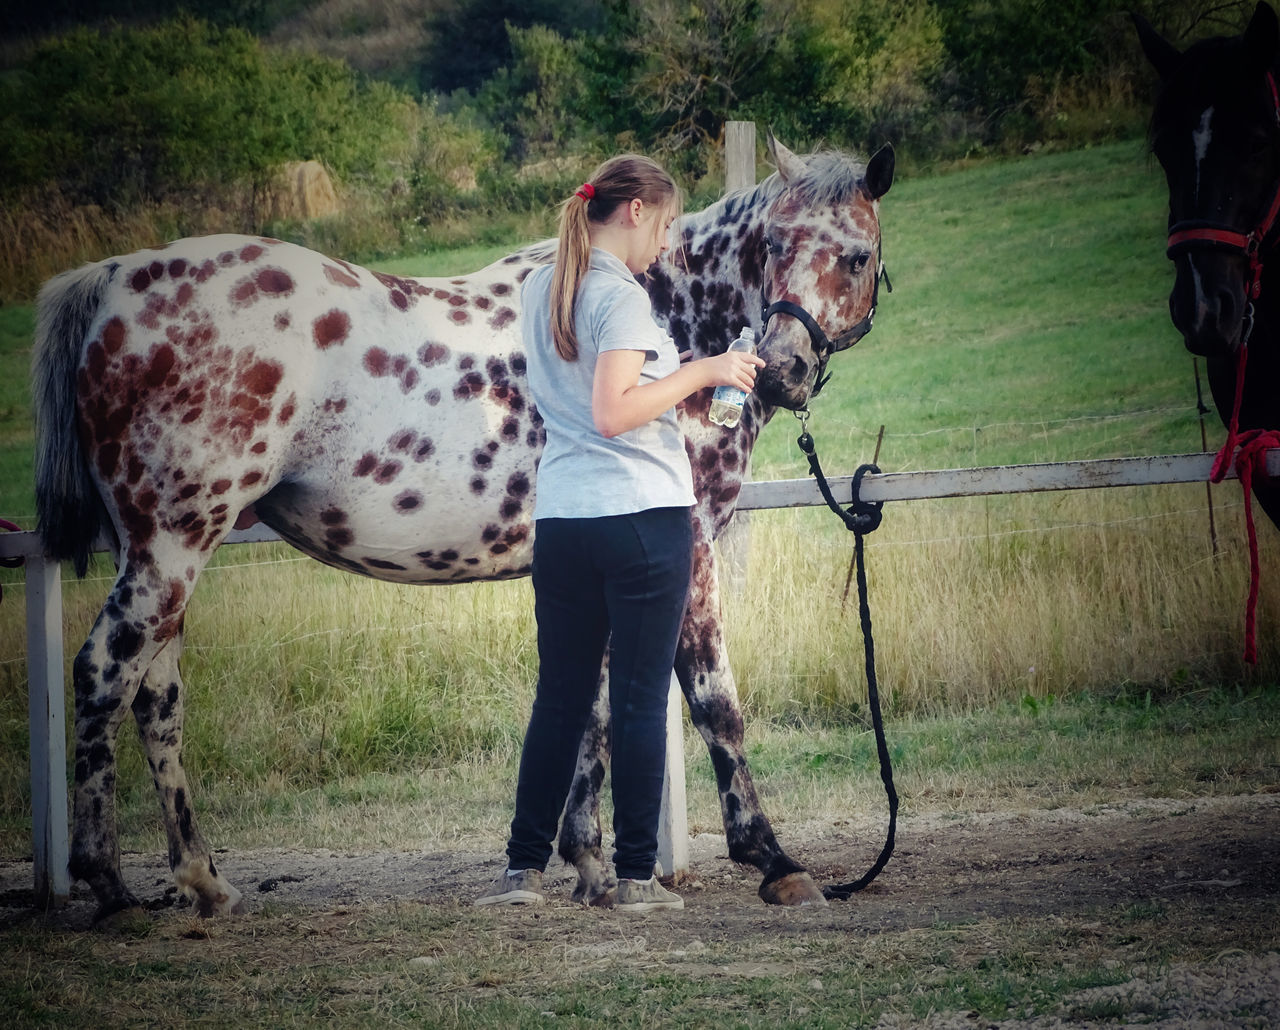 FULL LENGTH OF A HORSE STANDING IN FIELD